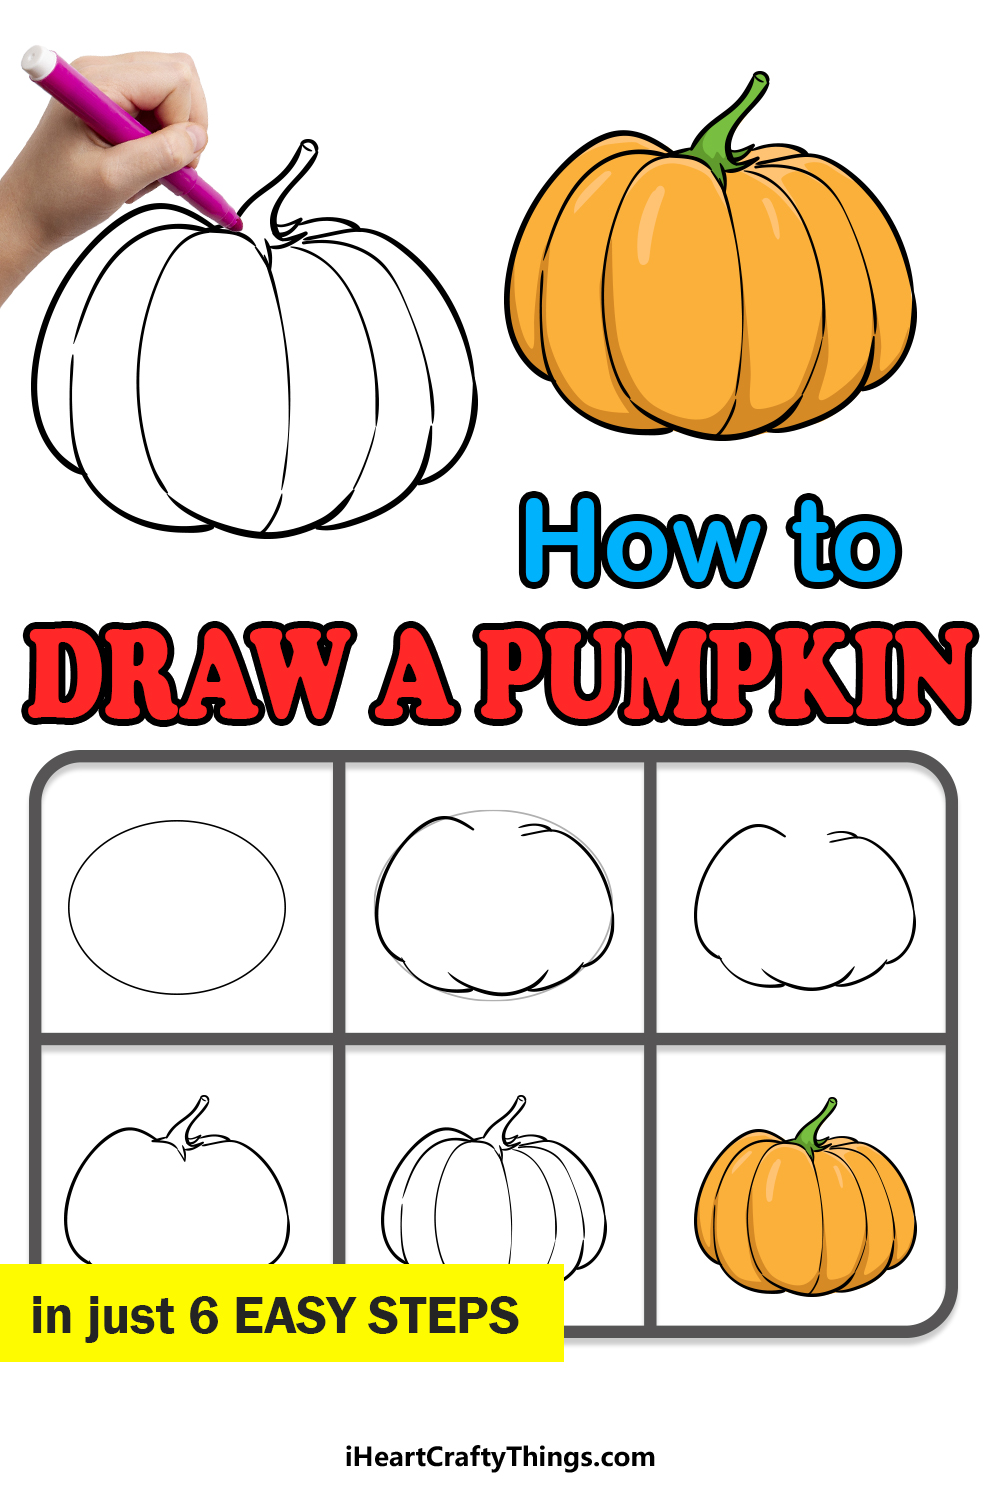 how to draw a pumpkin in 6 easy steps